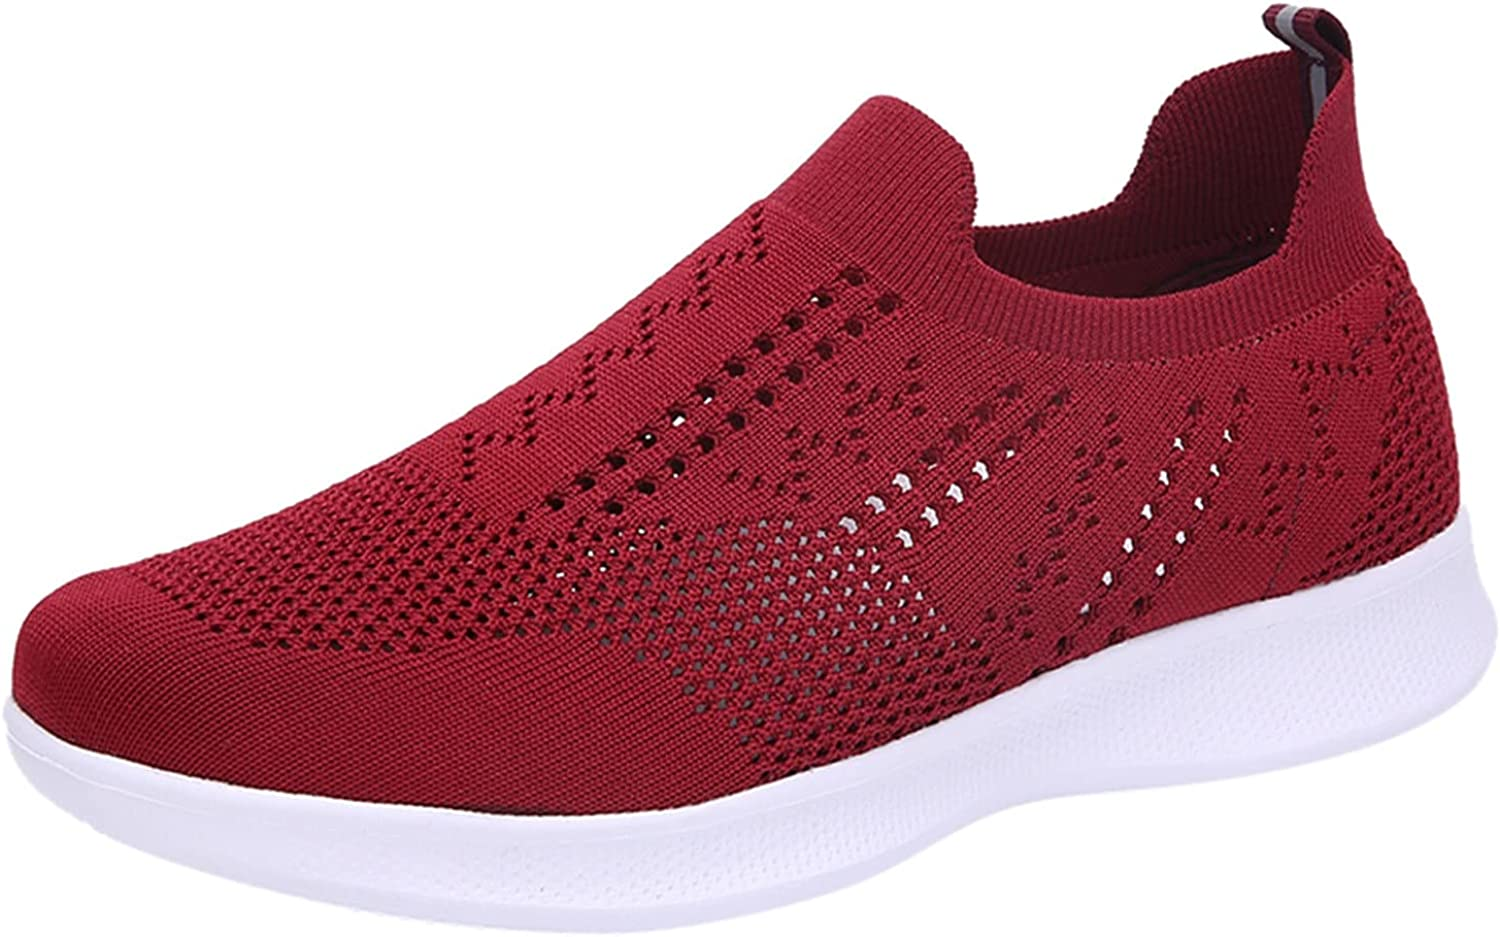 Couples Women Outdoor Mesh Sports Shoes Runing Breathable Shoes